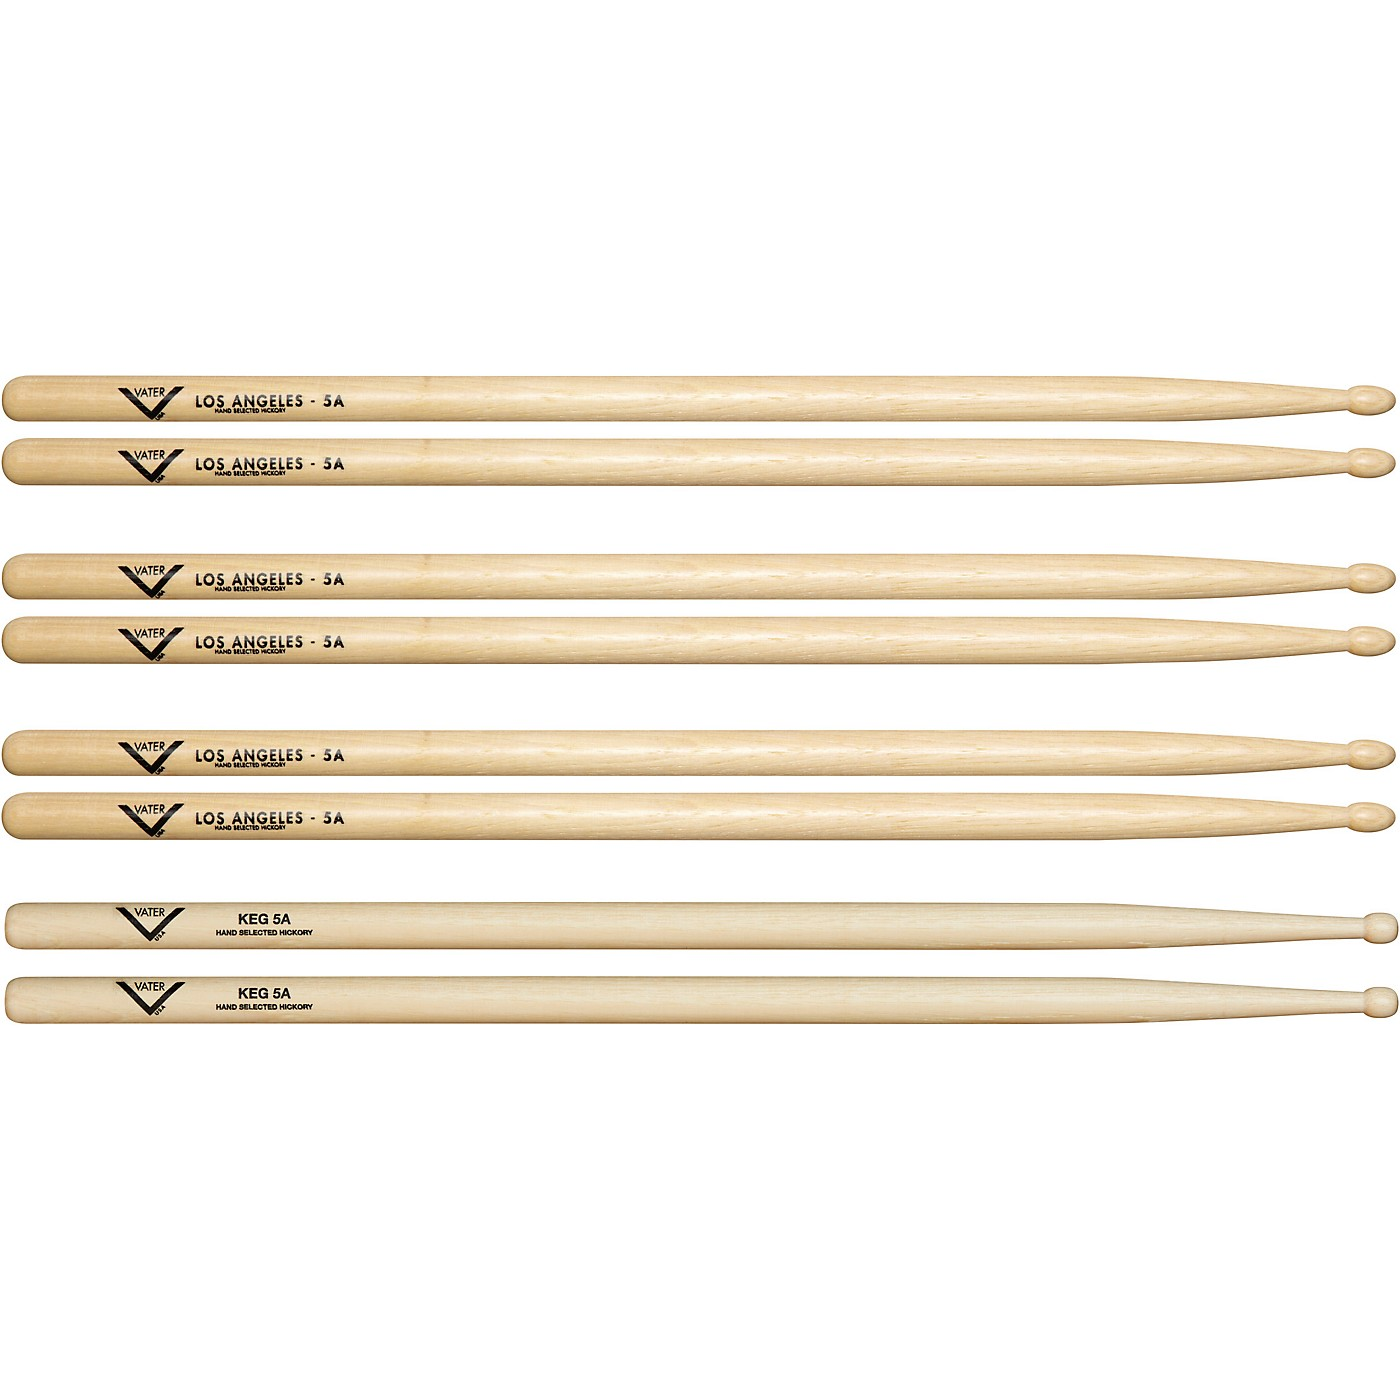 Vater Buy 3 5A Wood Drum Sticks Pairs, Get 1 Free KEG 5A Pair thumbnail